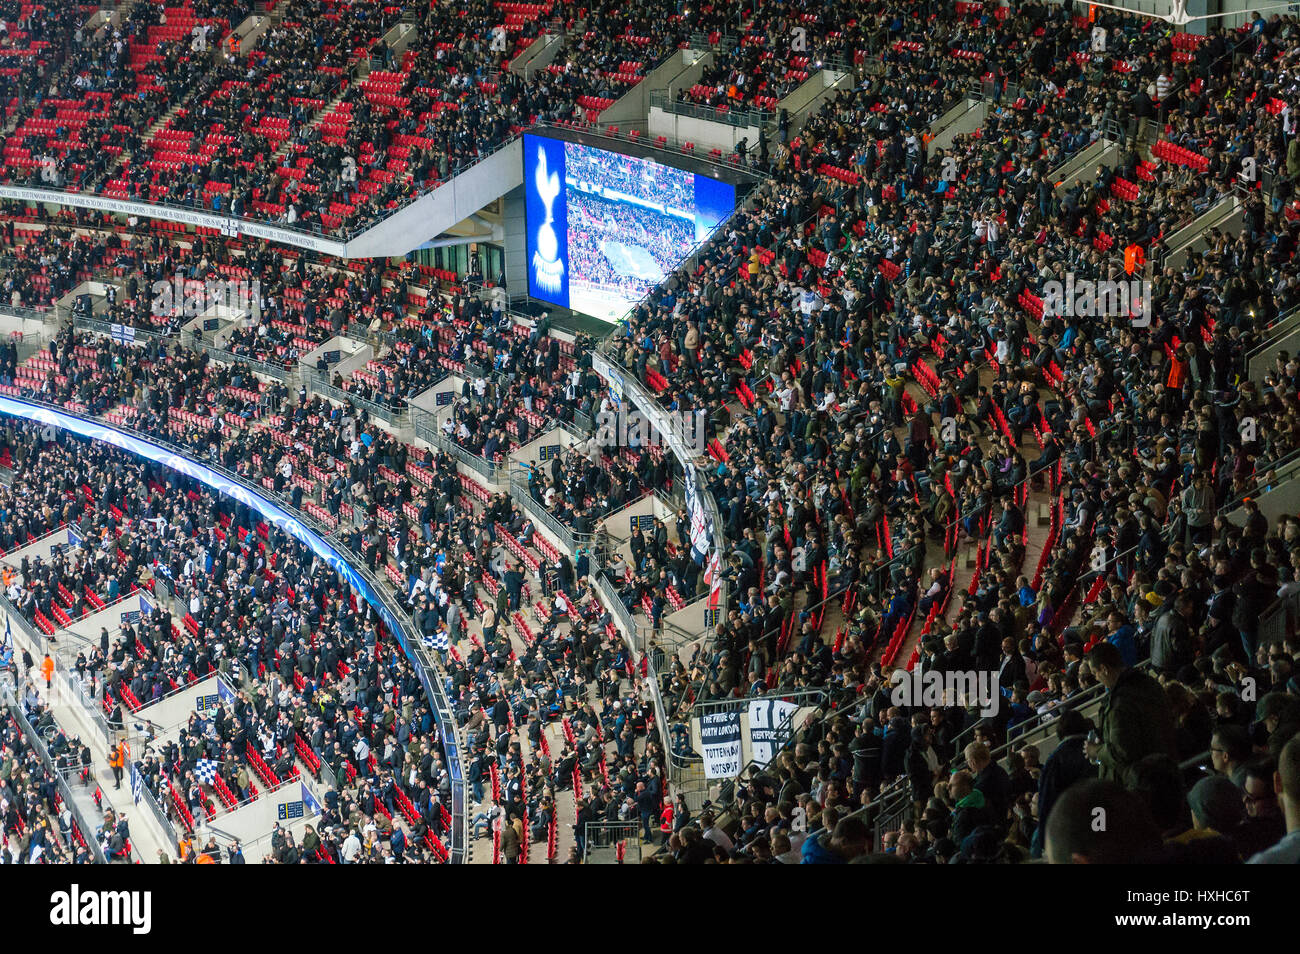 Spurs fans waiting for Tottenham Hotspur versus Bayer Leverkusen in the Champions League at Wembley Stadium, London, - Stock Image